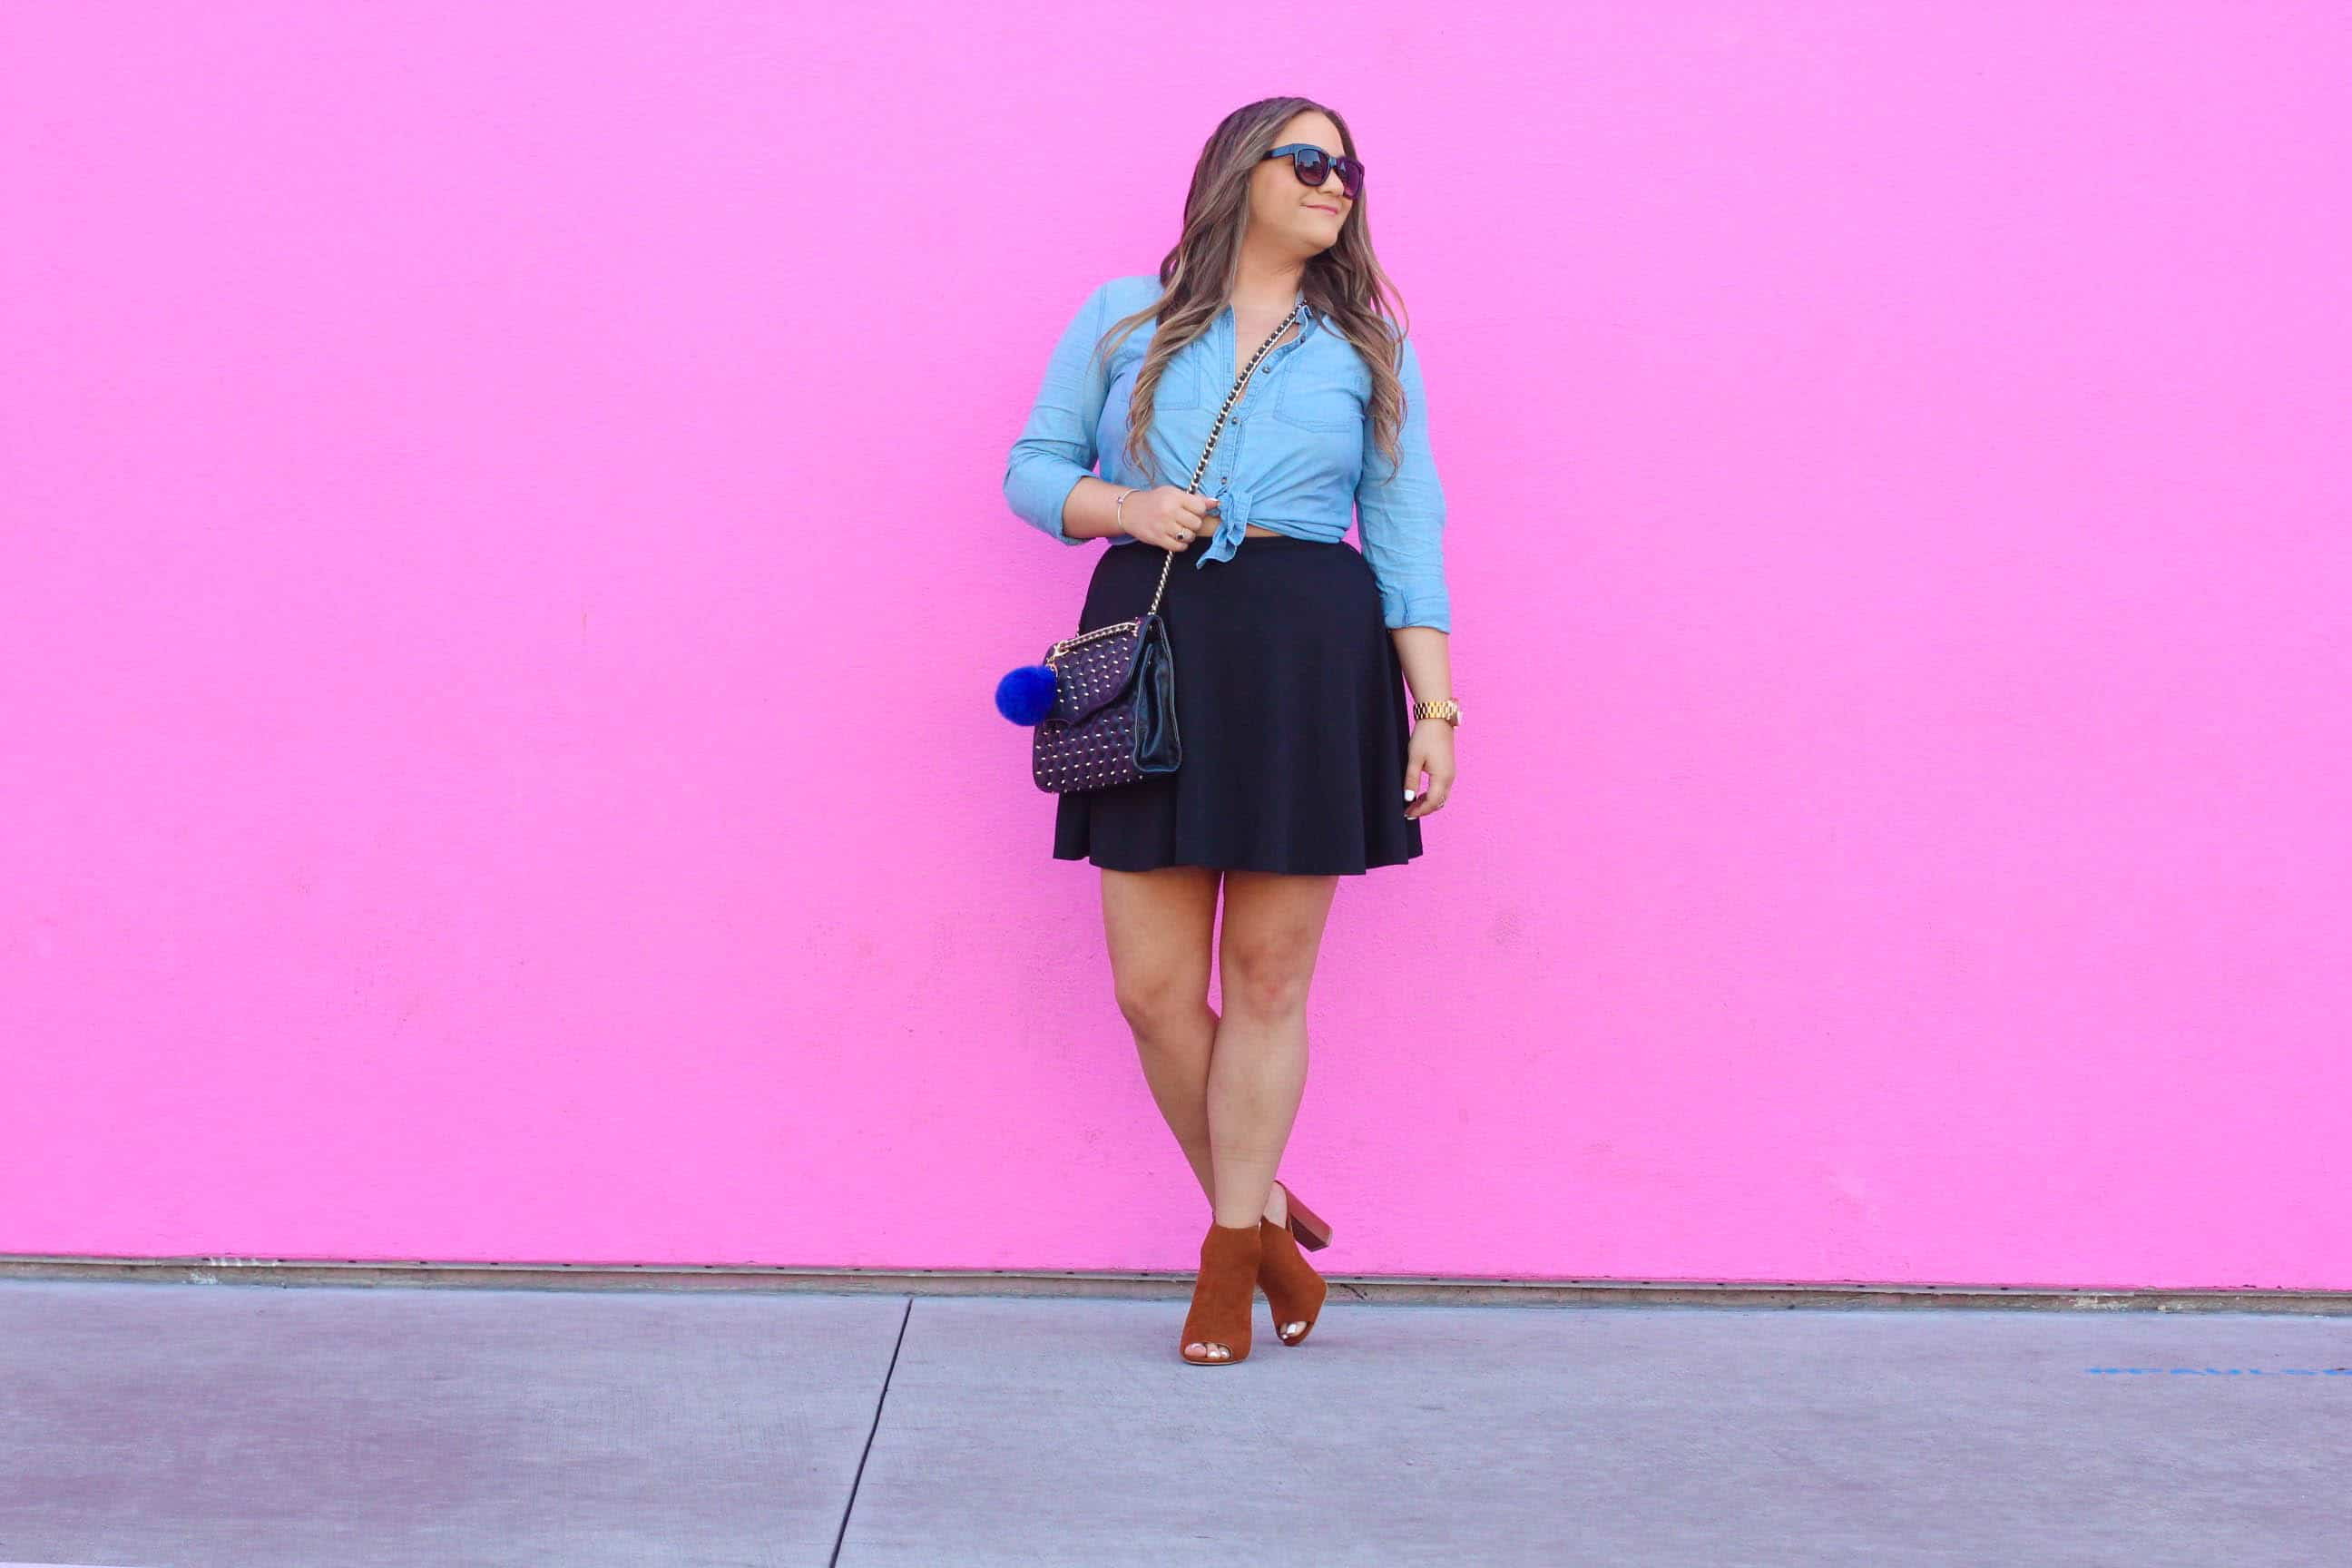 missyonmadison, melissa tierney, missyonmadison instagram, fashion blog, fashion blogger, bloglovin, style goals, style watch, forever 21, black mini skirt, black skater skirt, chesnut booties, tan booties, peep toe booties, rebecca minkoff, quilted bag, rebecca minkoff affair bag, rebecca minkoff quilted bag, wayfarer sunglasses, raybans, womens raybans, womens wayfarer sunglasses, that pink wall, pink wall la, pink wall, wall charades, wall crawl, blue pom pom, blue pom pom keychain, wall crawl la, la wall crawl, best murals in la, paul smith pink wall, la blogger, la style, chambray button down, old navy, chambray button down shirt,